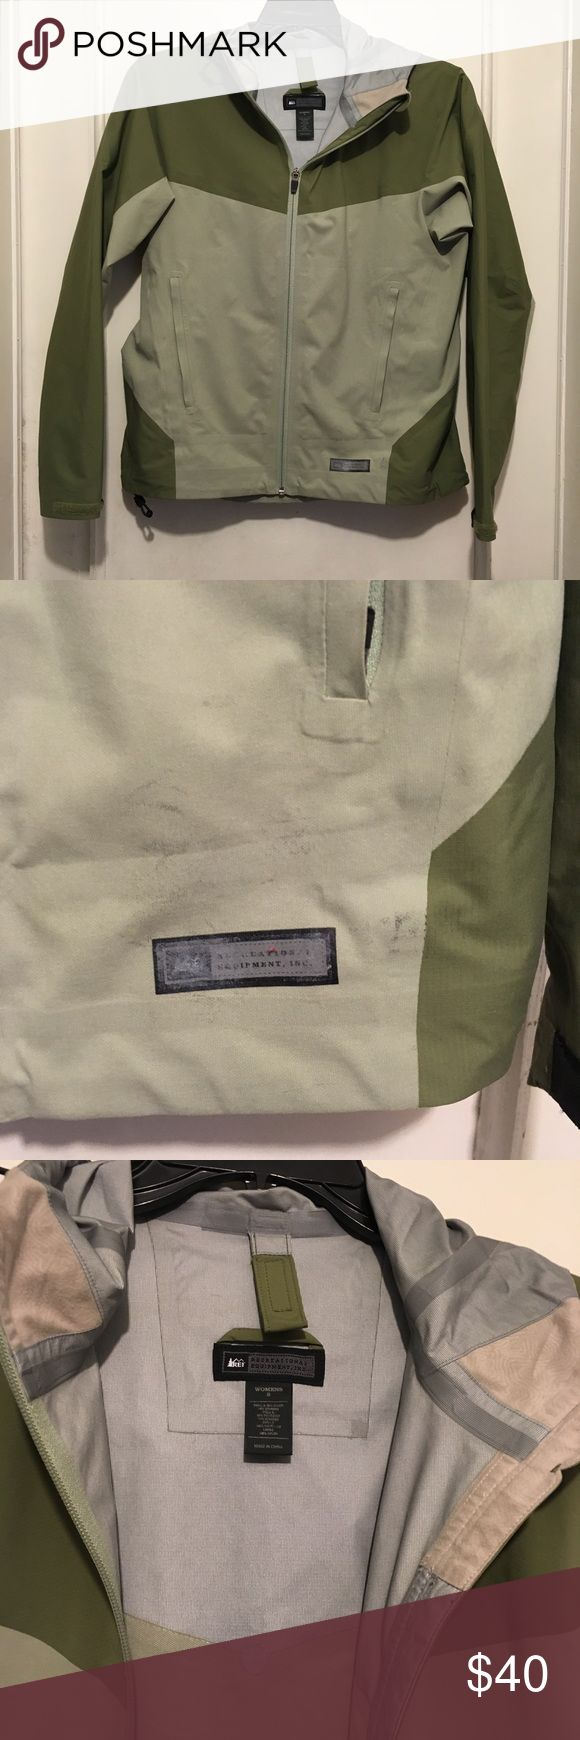 REI Co-op Green Outdoor Windbreaker Rain Jacket S Good lightly used condition. A nice jacket for the transition into fall. One flaw to note: there is a greyish smudge on the left bottom corner right above the front tag. Men's version is shown in stock photo. REI Jackets & Coats Utility Jackets